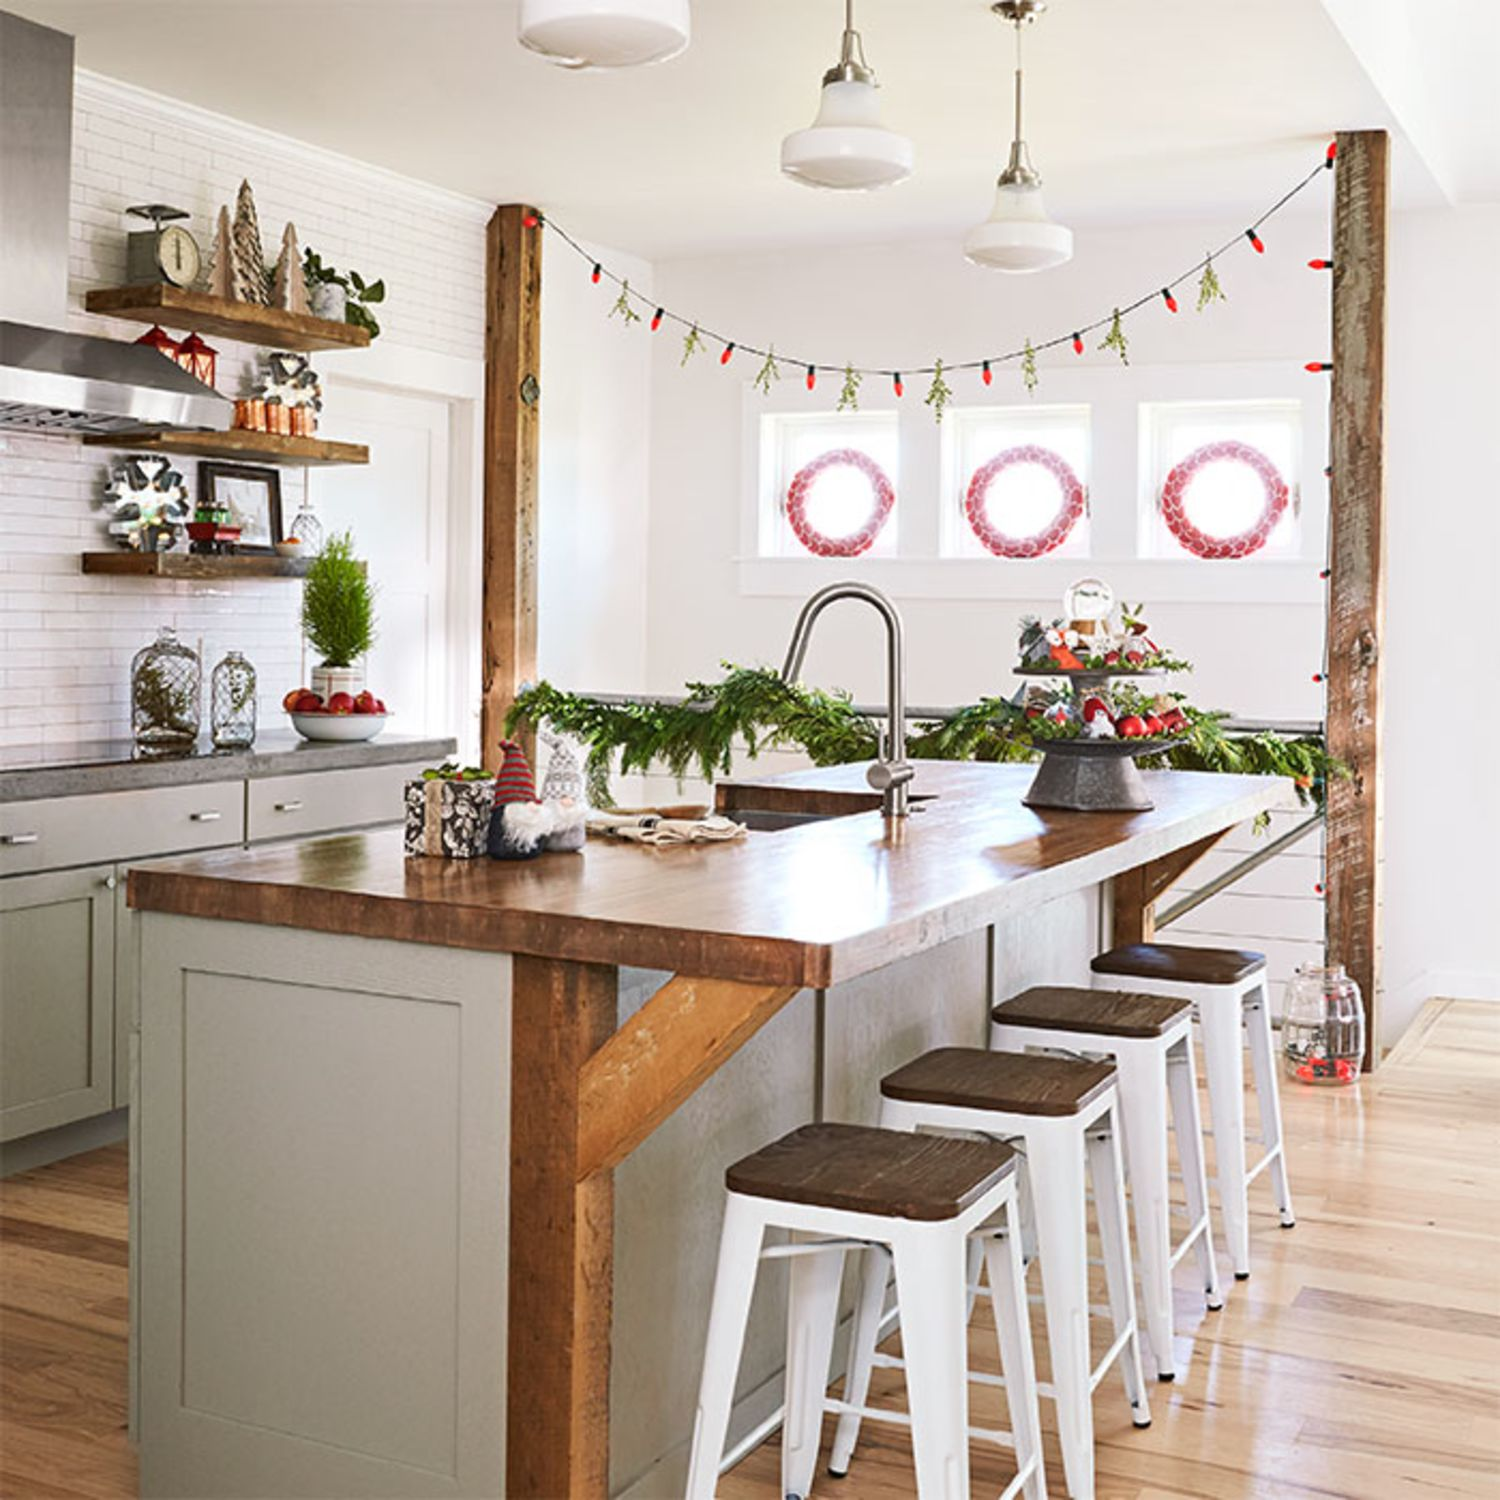 Christmas In The Kitchen: The Cutest Holiday Way To Light Up The Kitchen